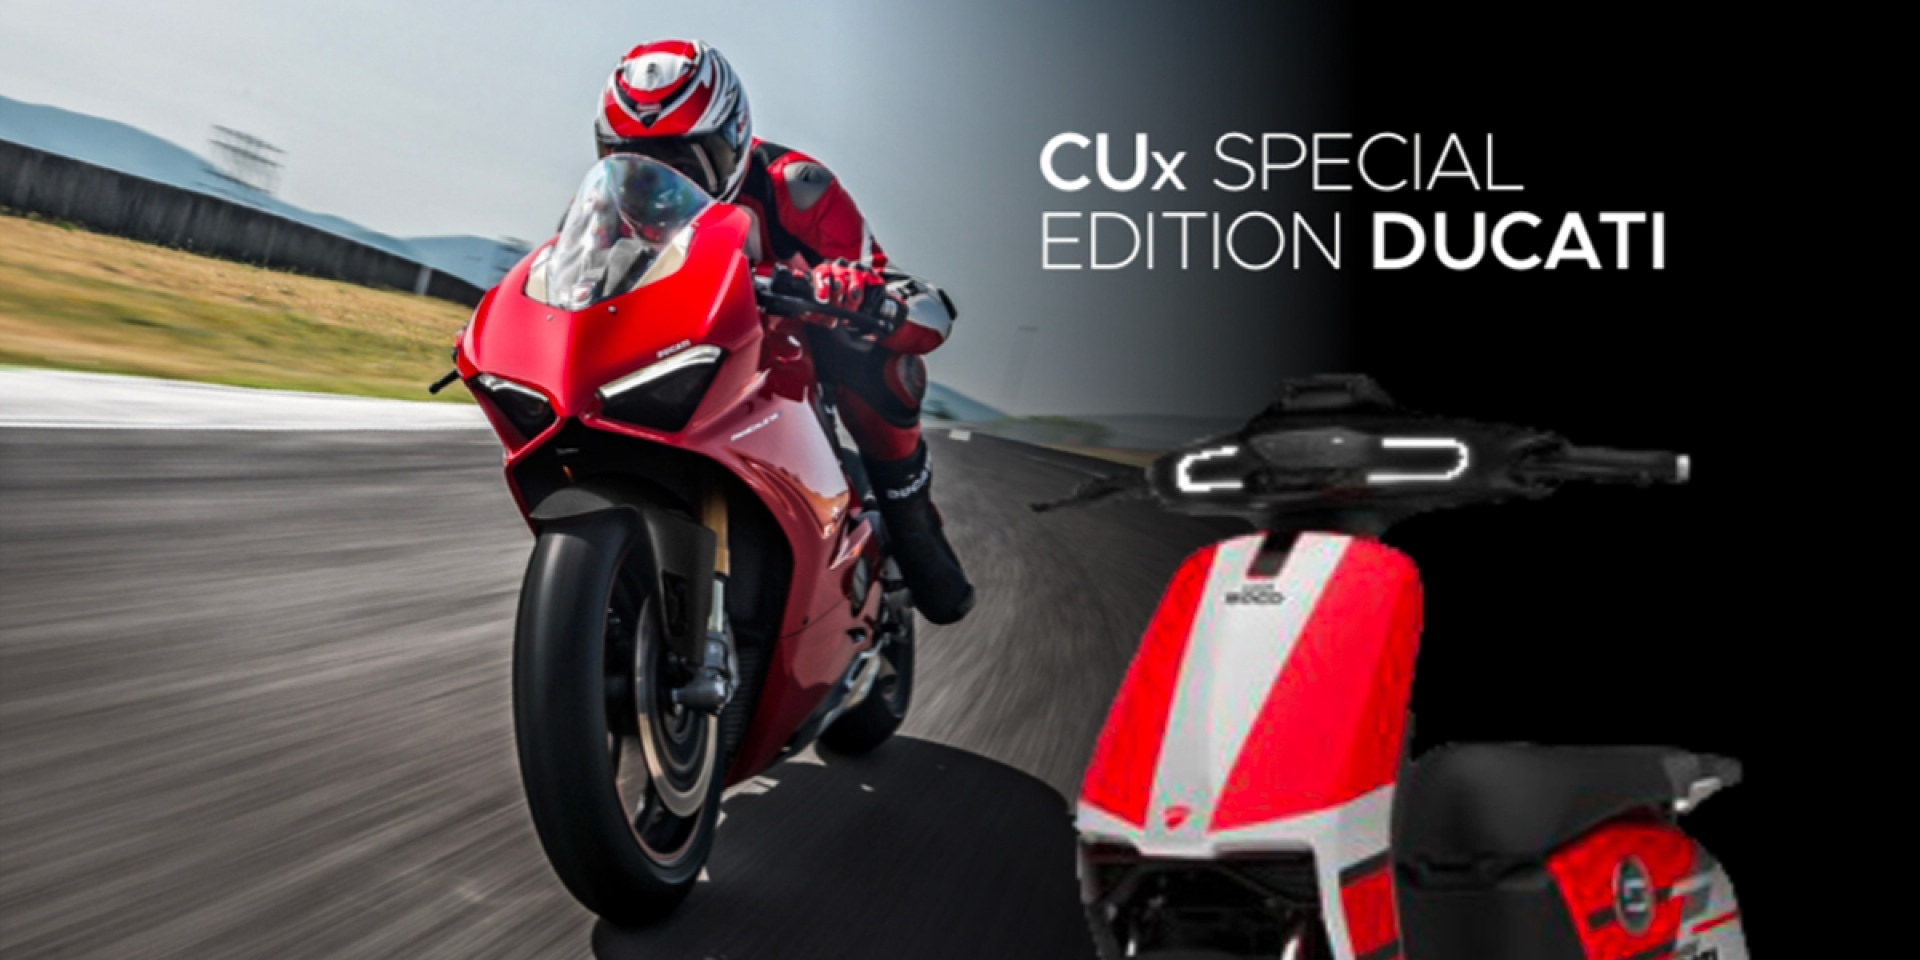 Ducati電動車?SuperSoco CUx Special Edition Ducati